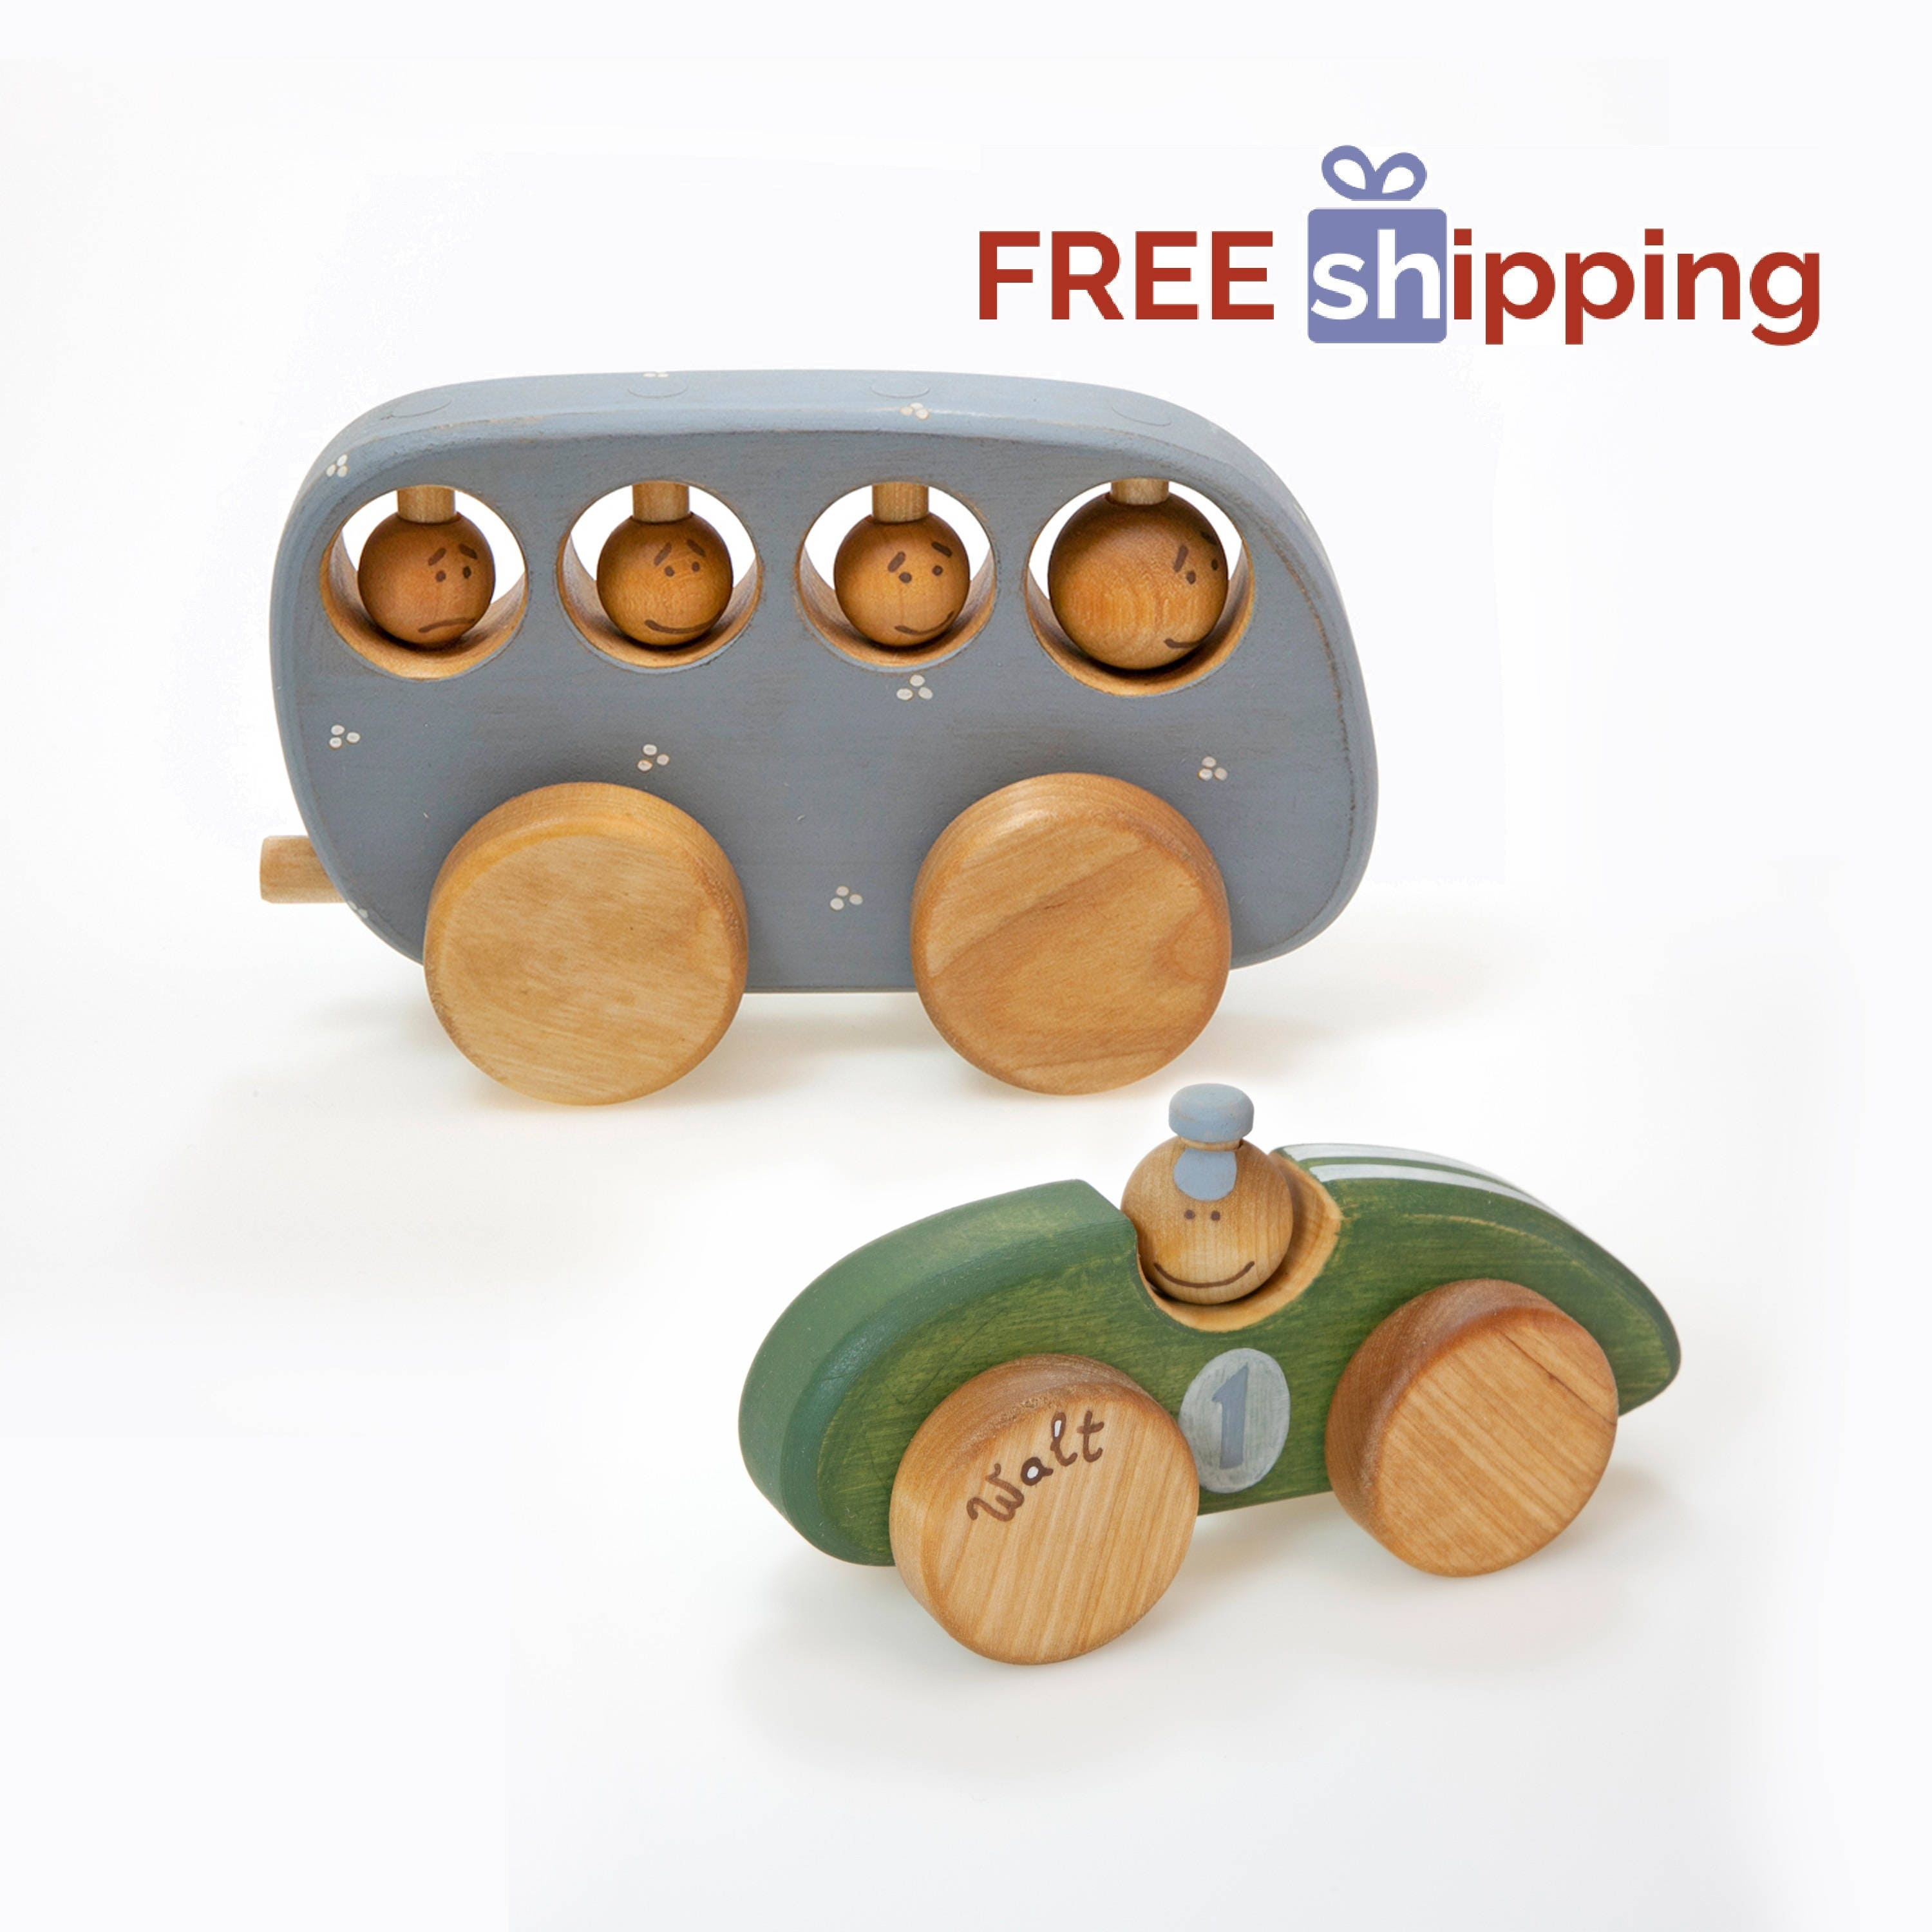 Wood Toys Best Wooden Toys for Toddlers Free Shipping